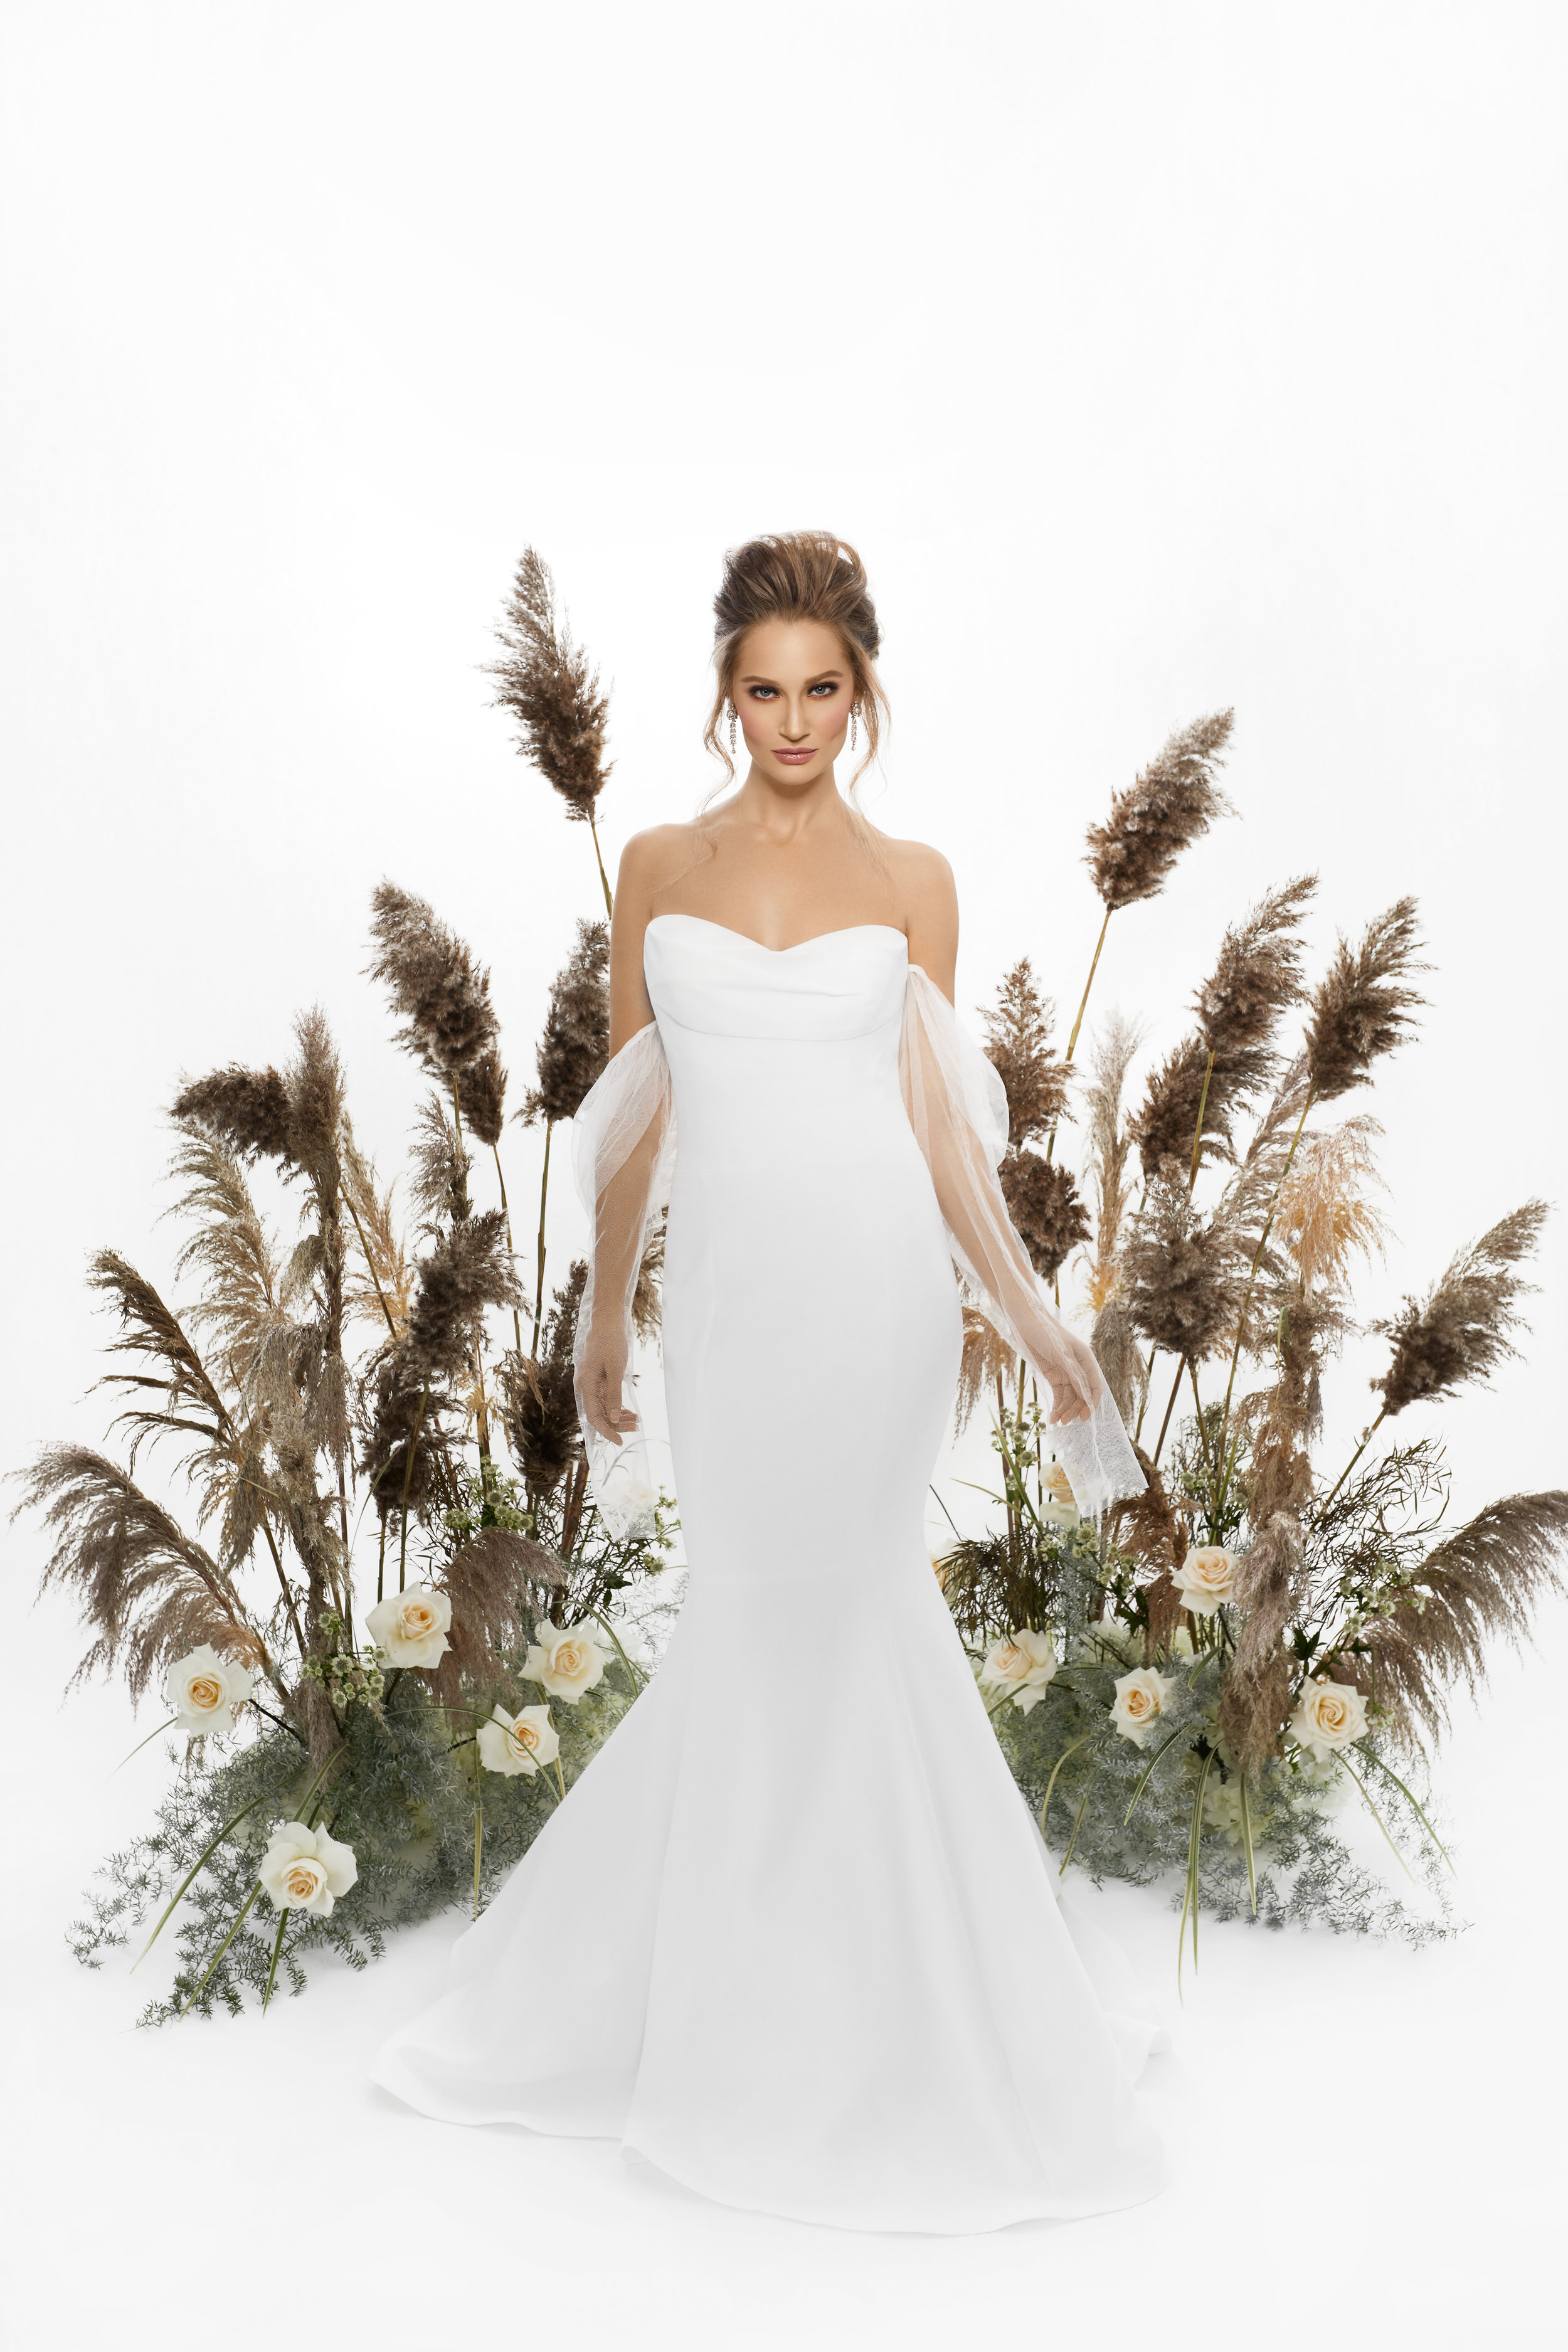 August In Bloom - Bride in strapless Vera Wang gown - Purely Poised (The Bridal Affair)